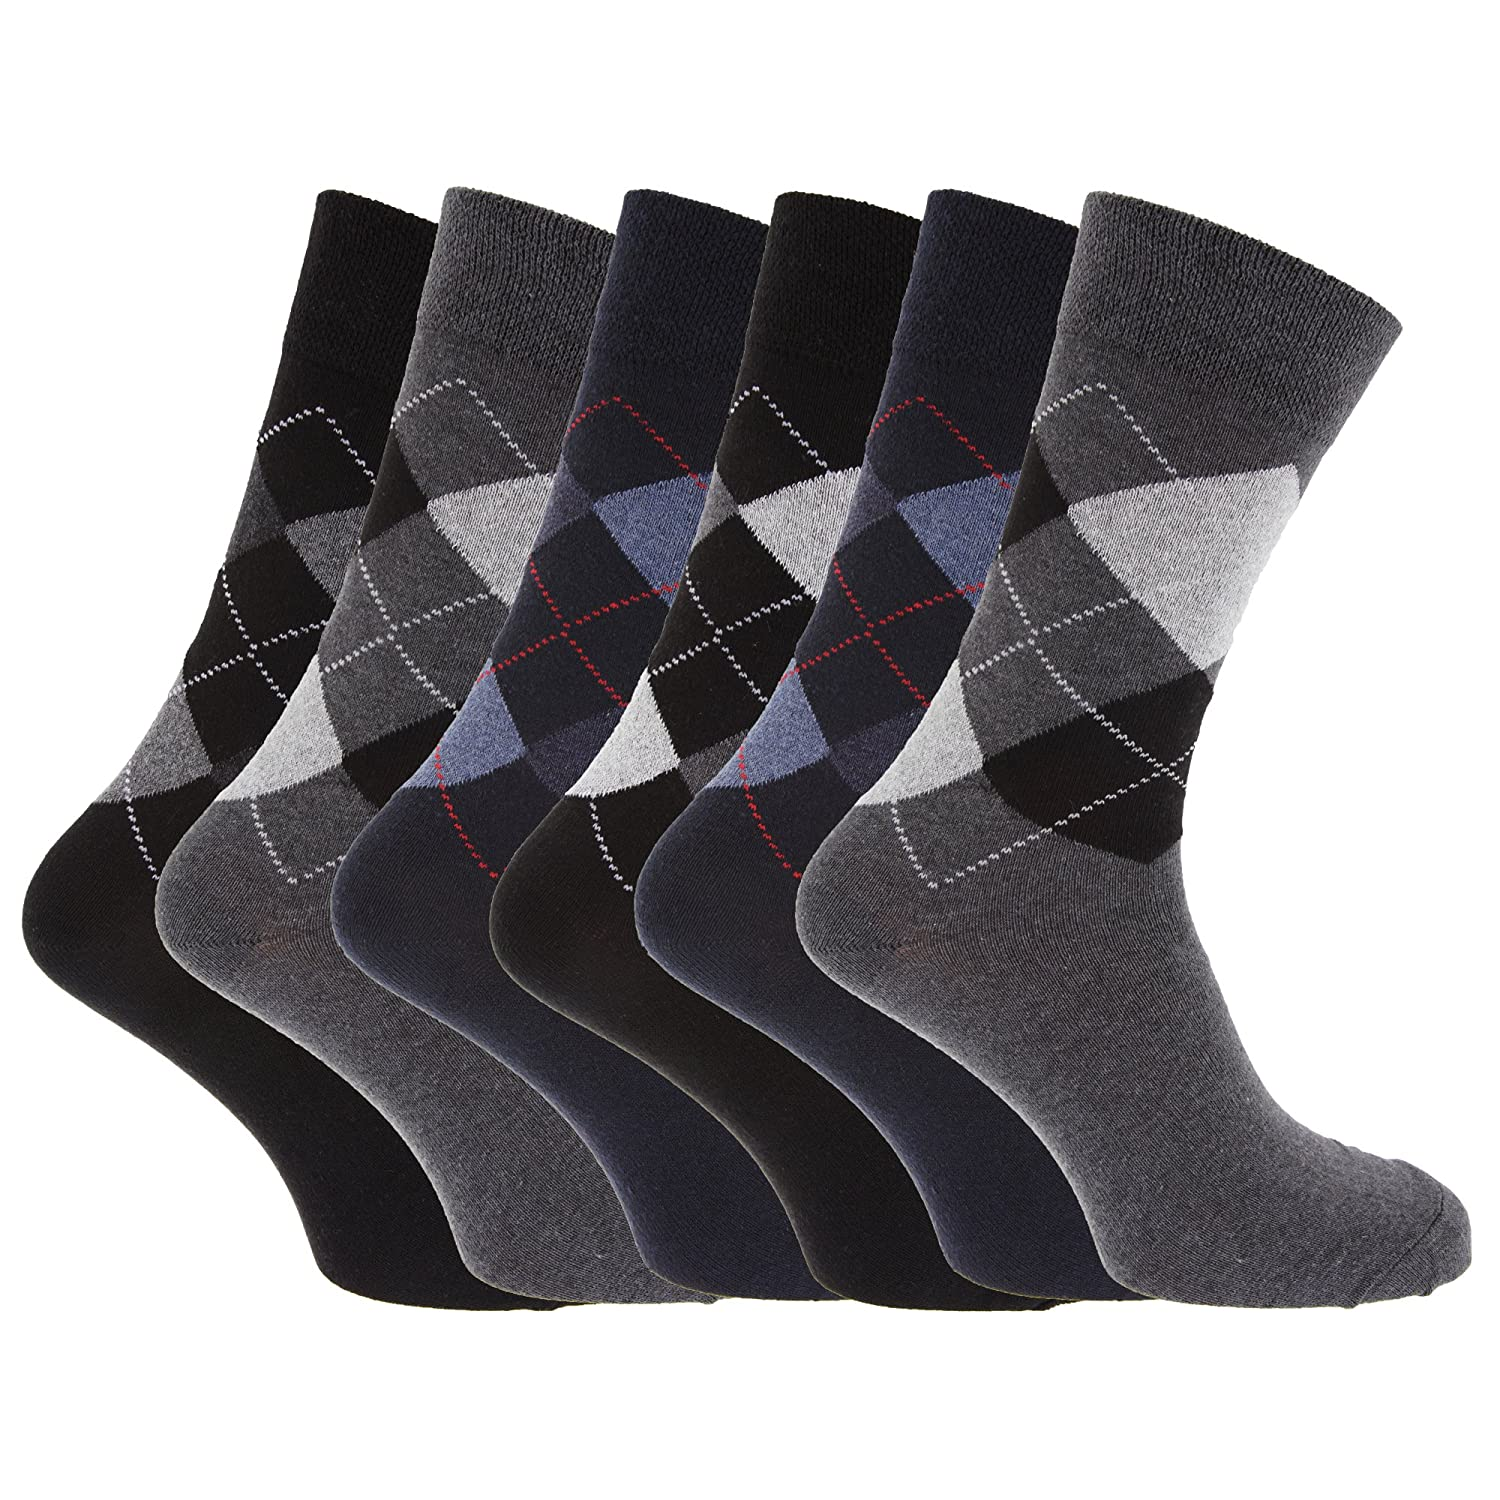 Mens Pattern Cotton Blend Argyle Socks (Pack Of 6) Universal Textiles UTMB150_5